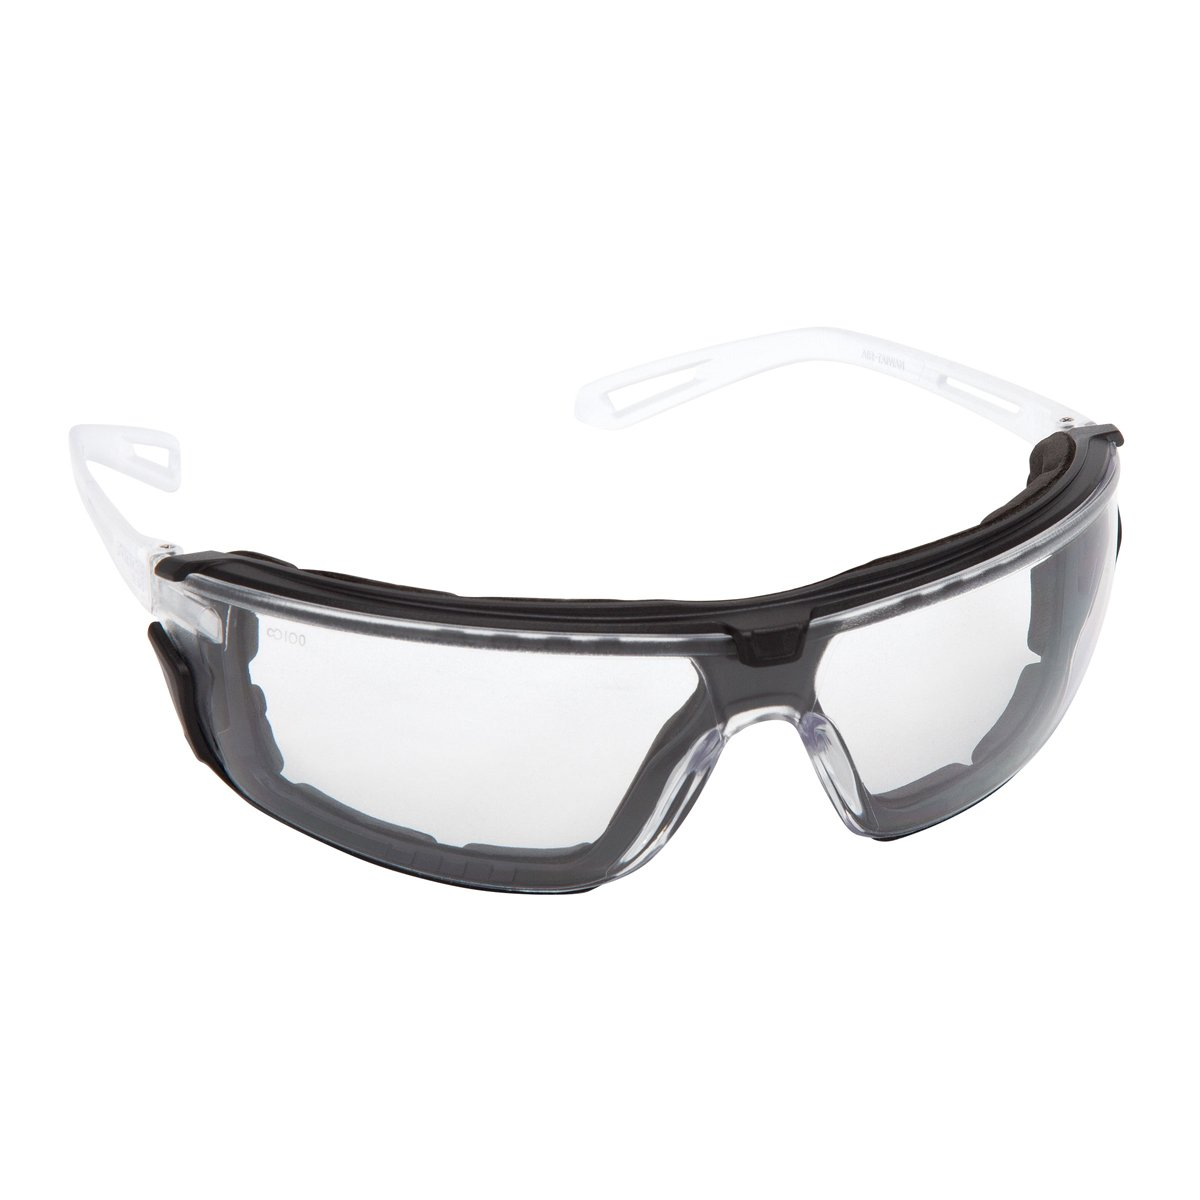 Force360 Air-G Clear Lens Safety Spectacle with Gasket